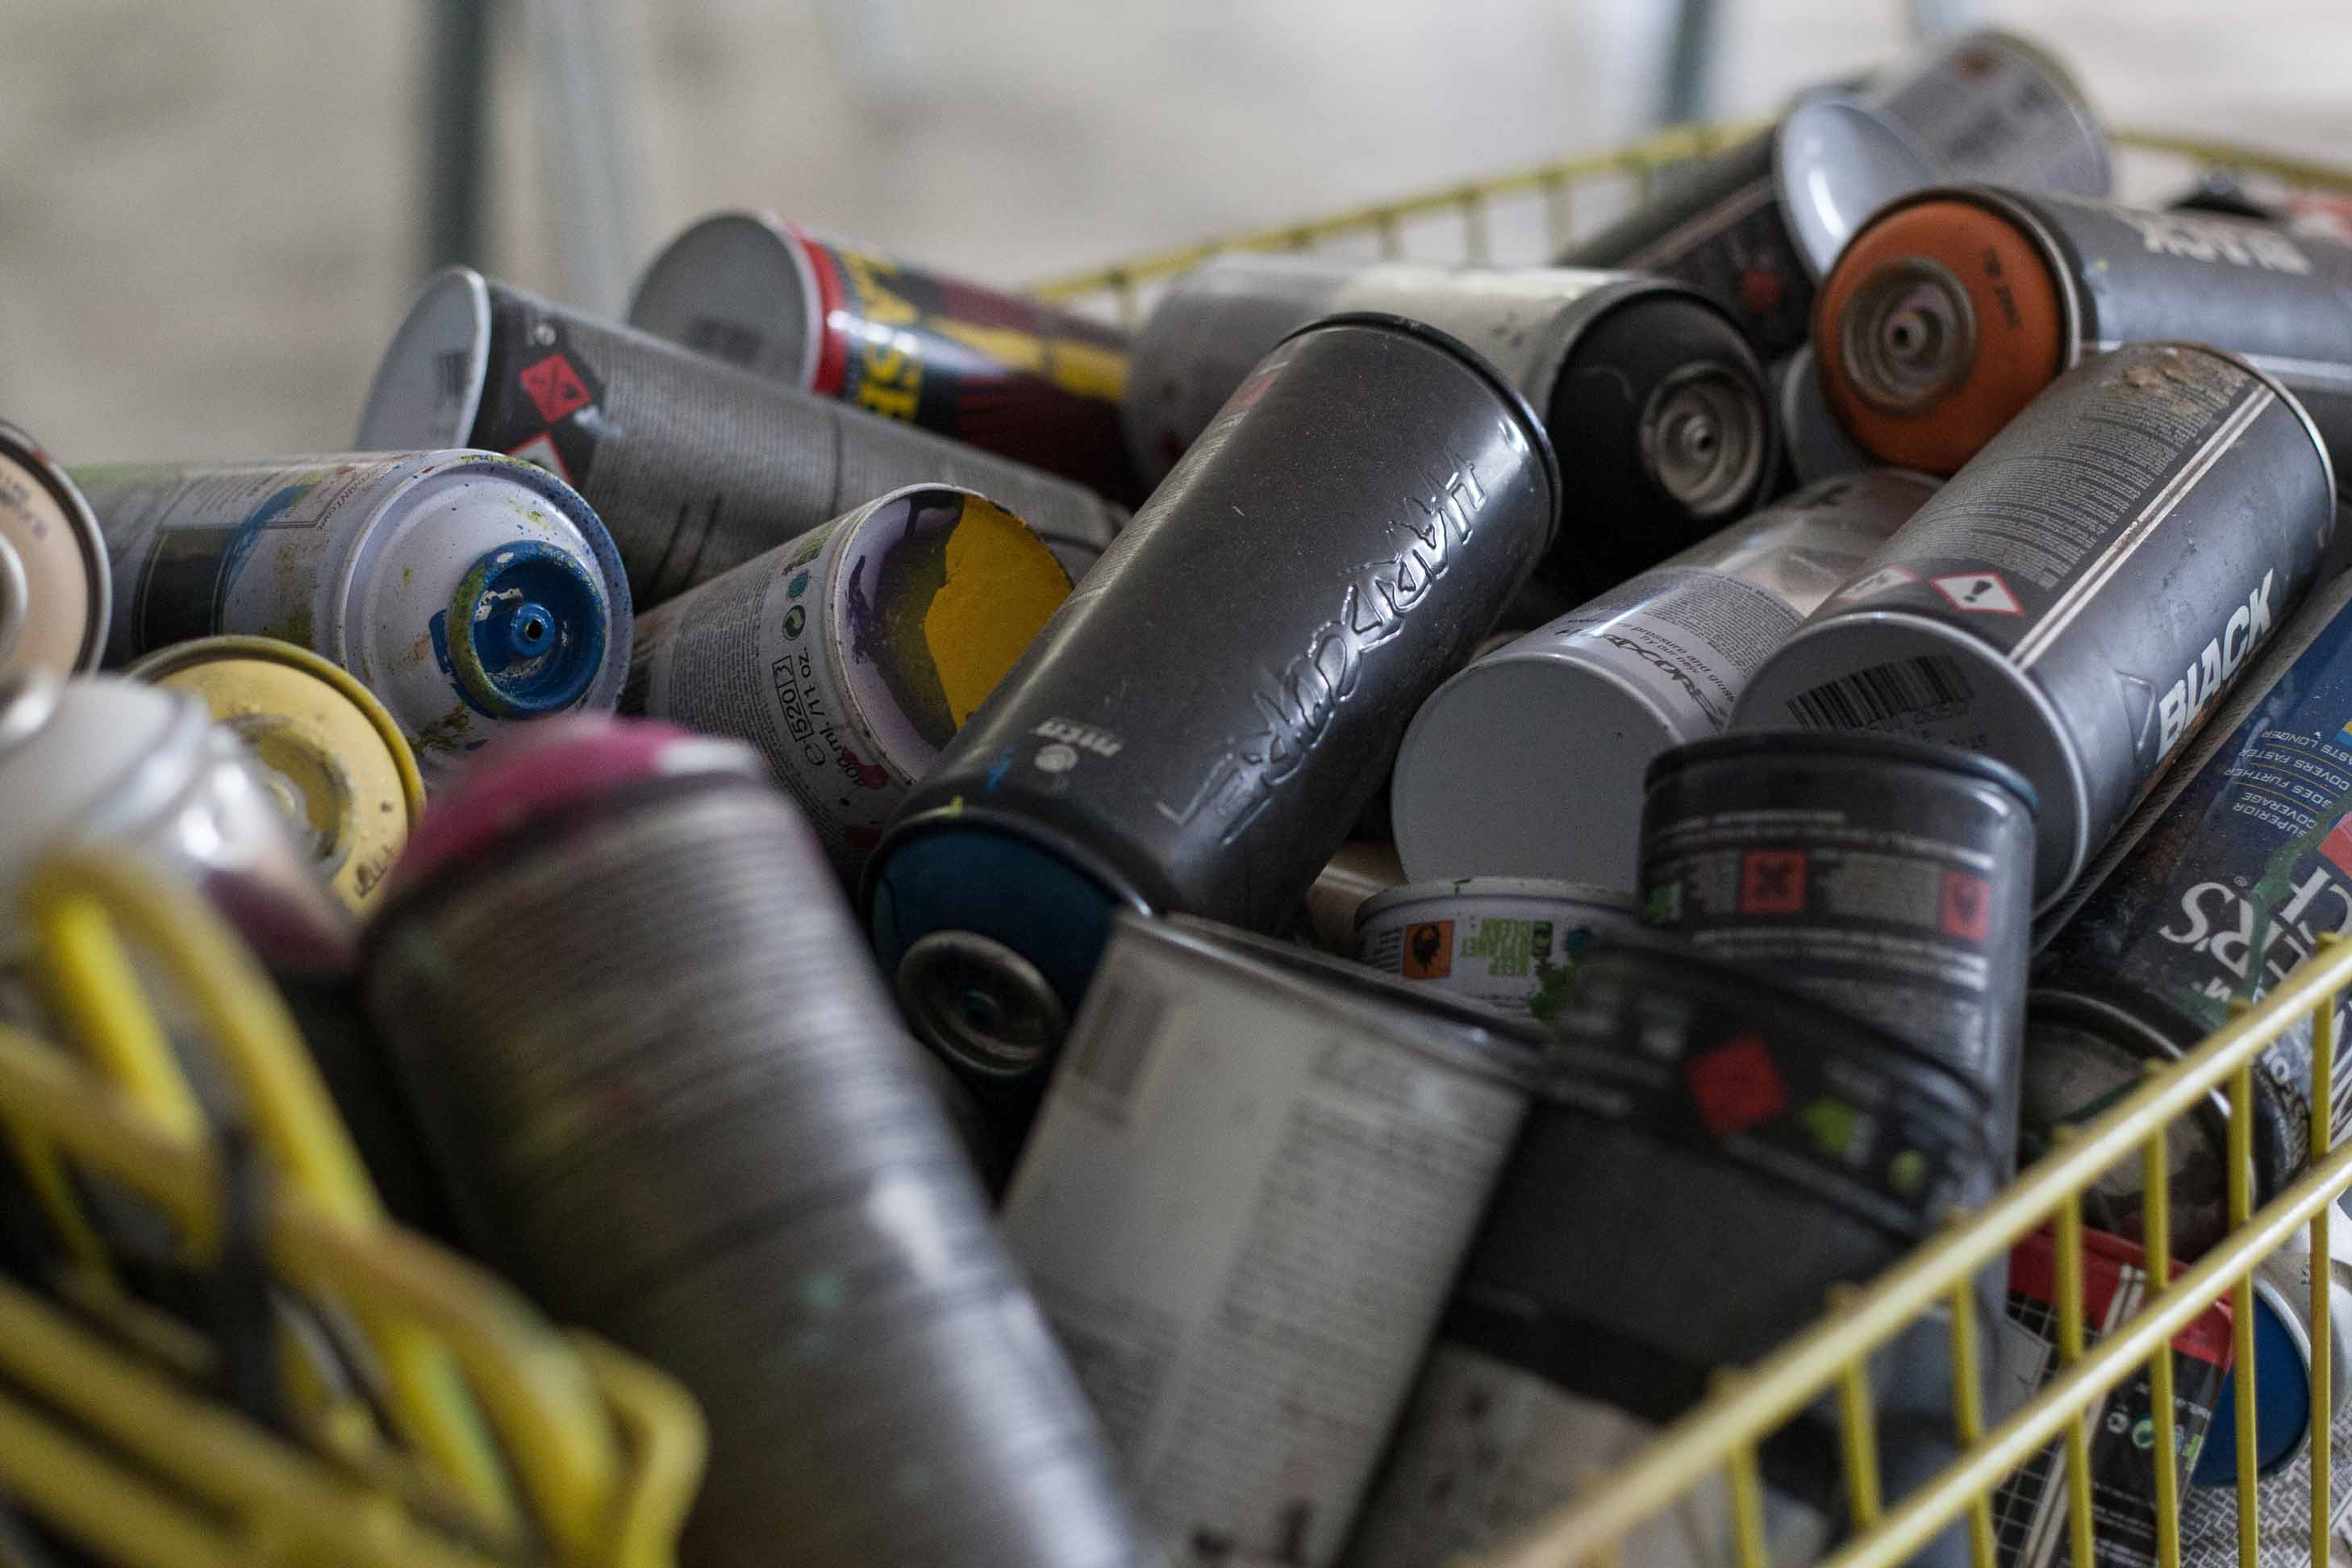 gonzo---spray-cans